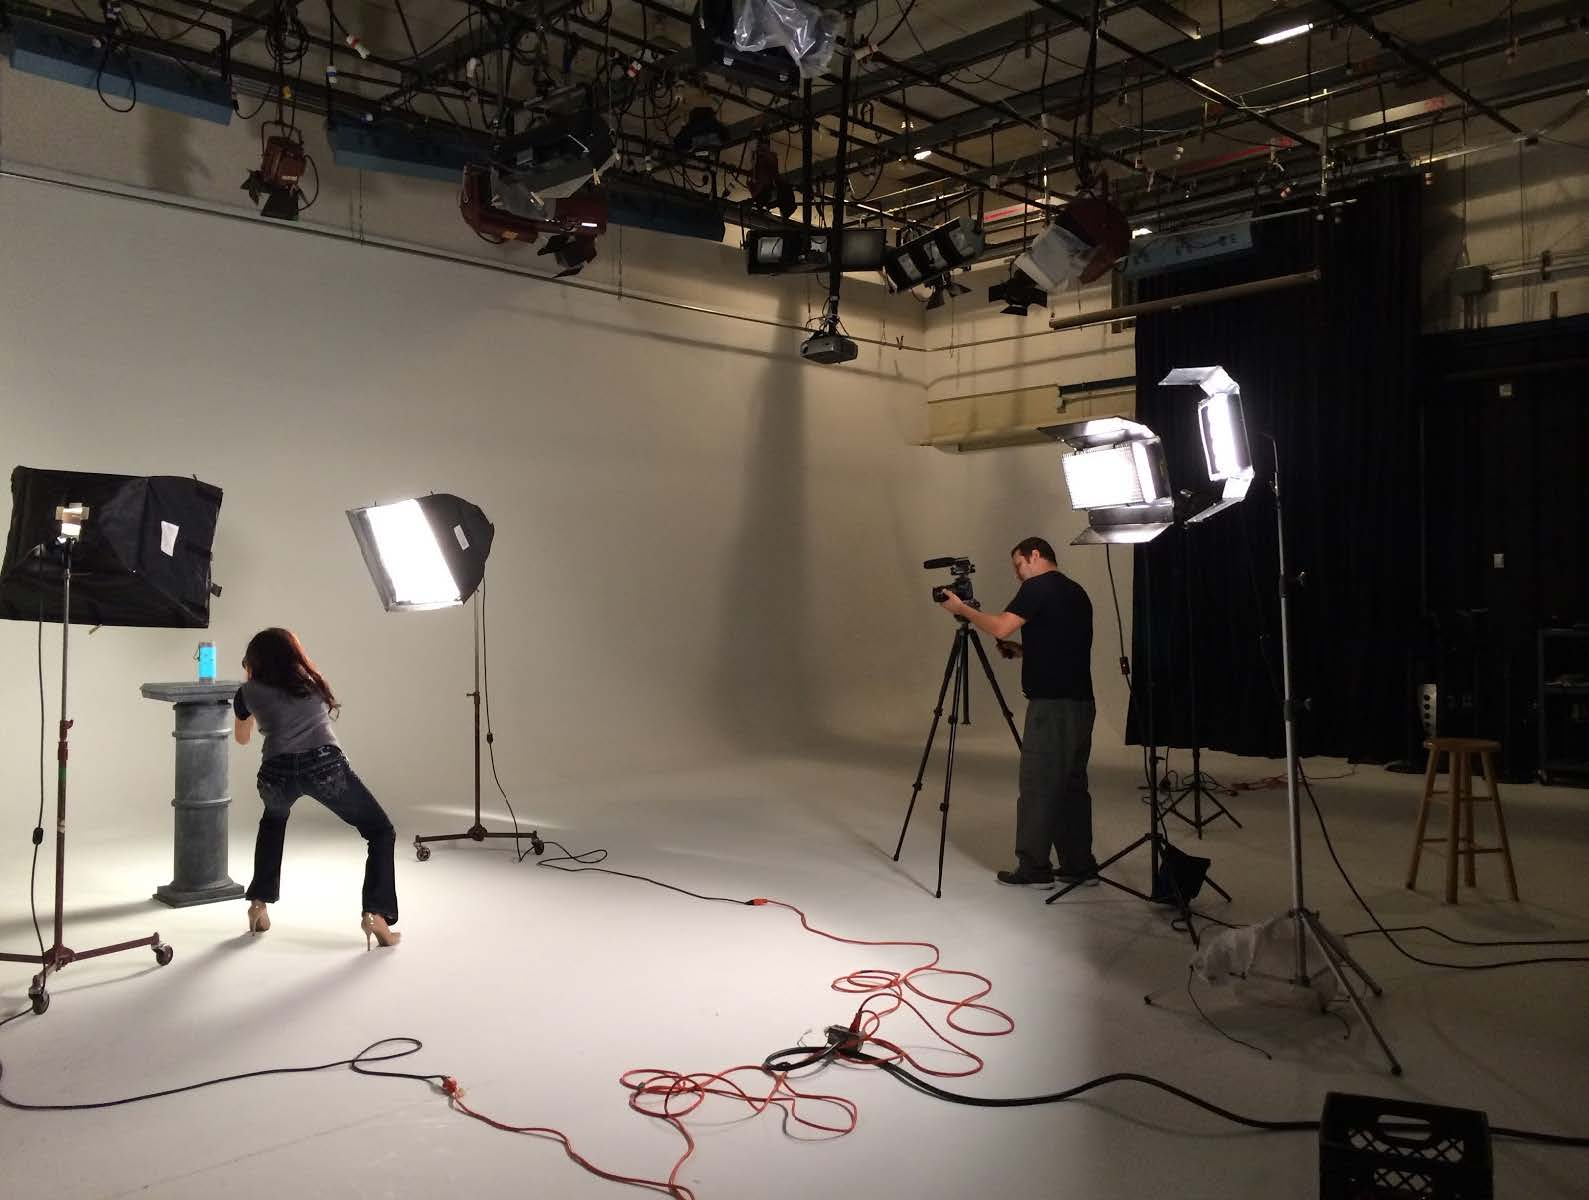 Video crew in a white studio filming product shots of a crowdfunding product